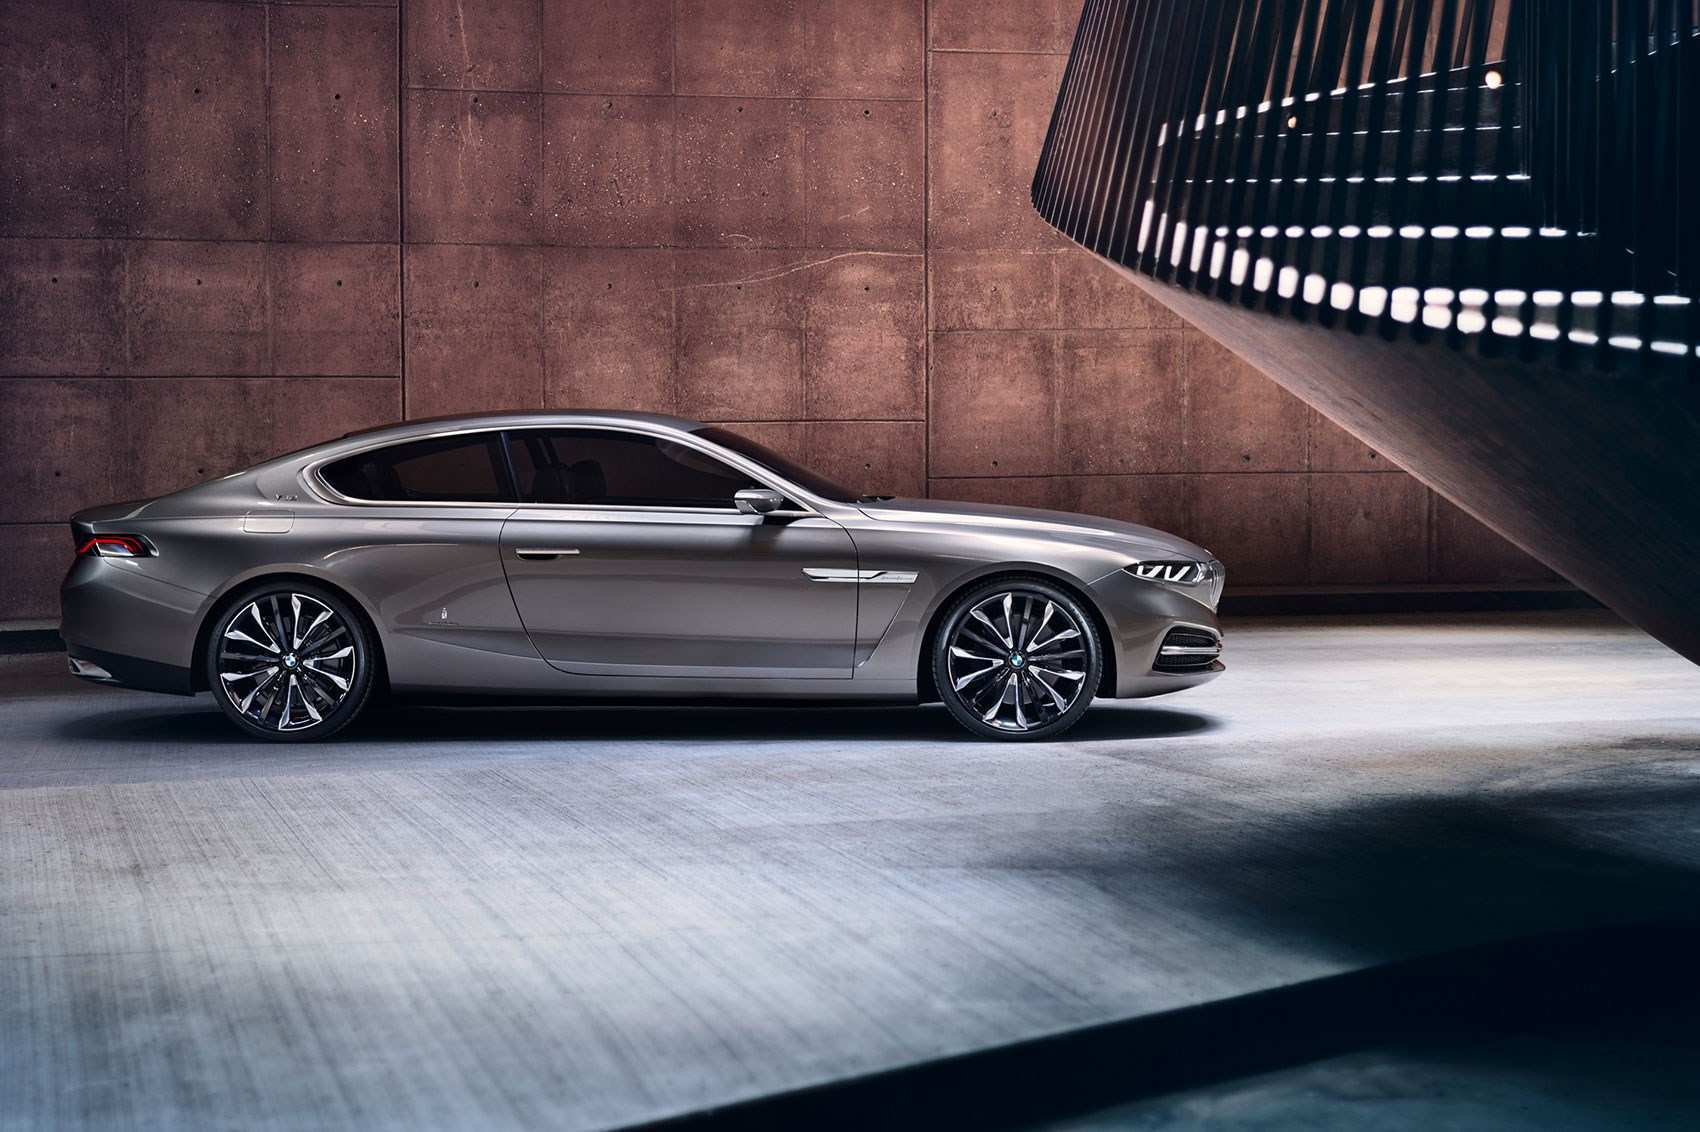 51 Concept of 2020 Bmw 9 Serisi Photos with 2020 Bmw 9 Serisi